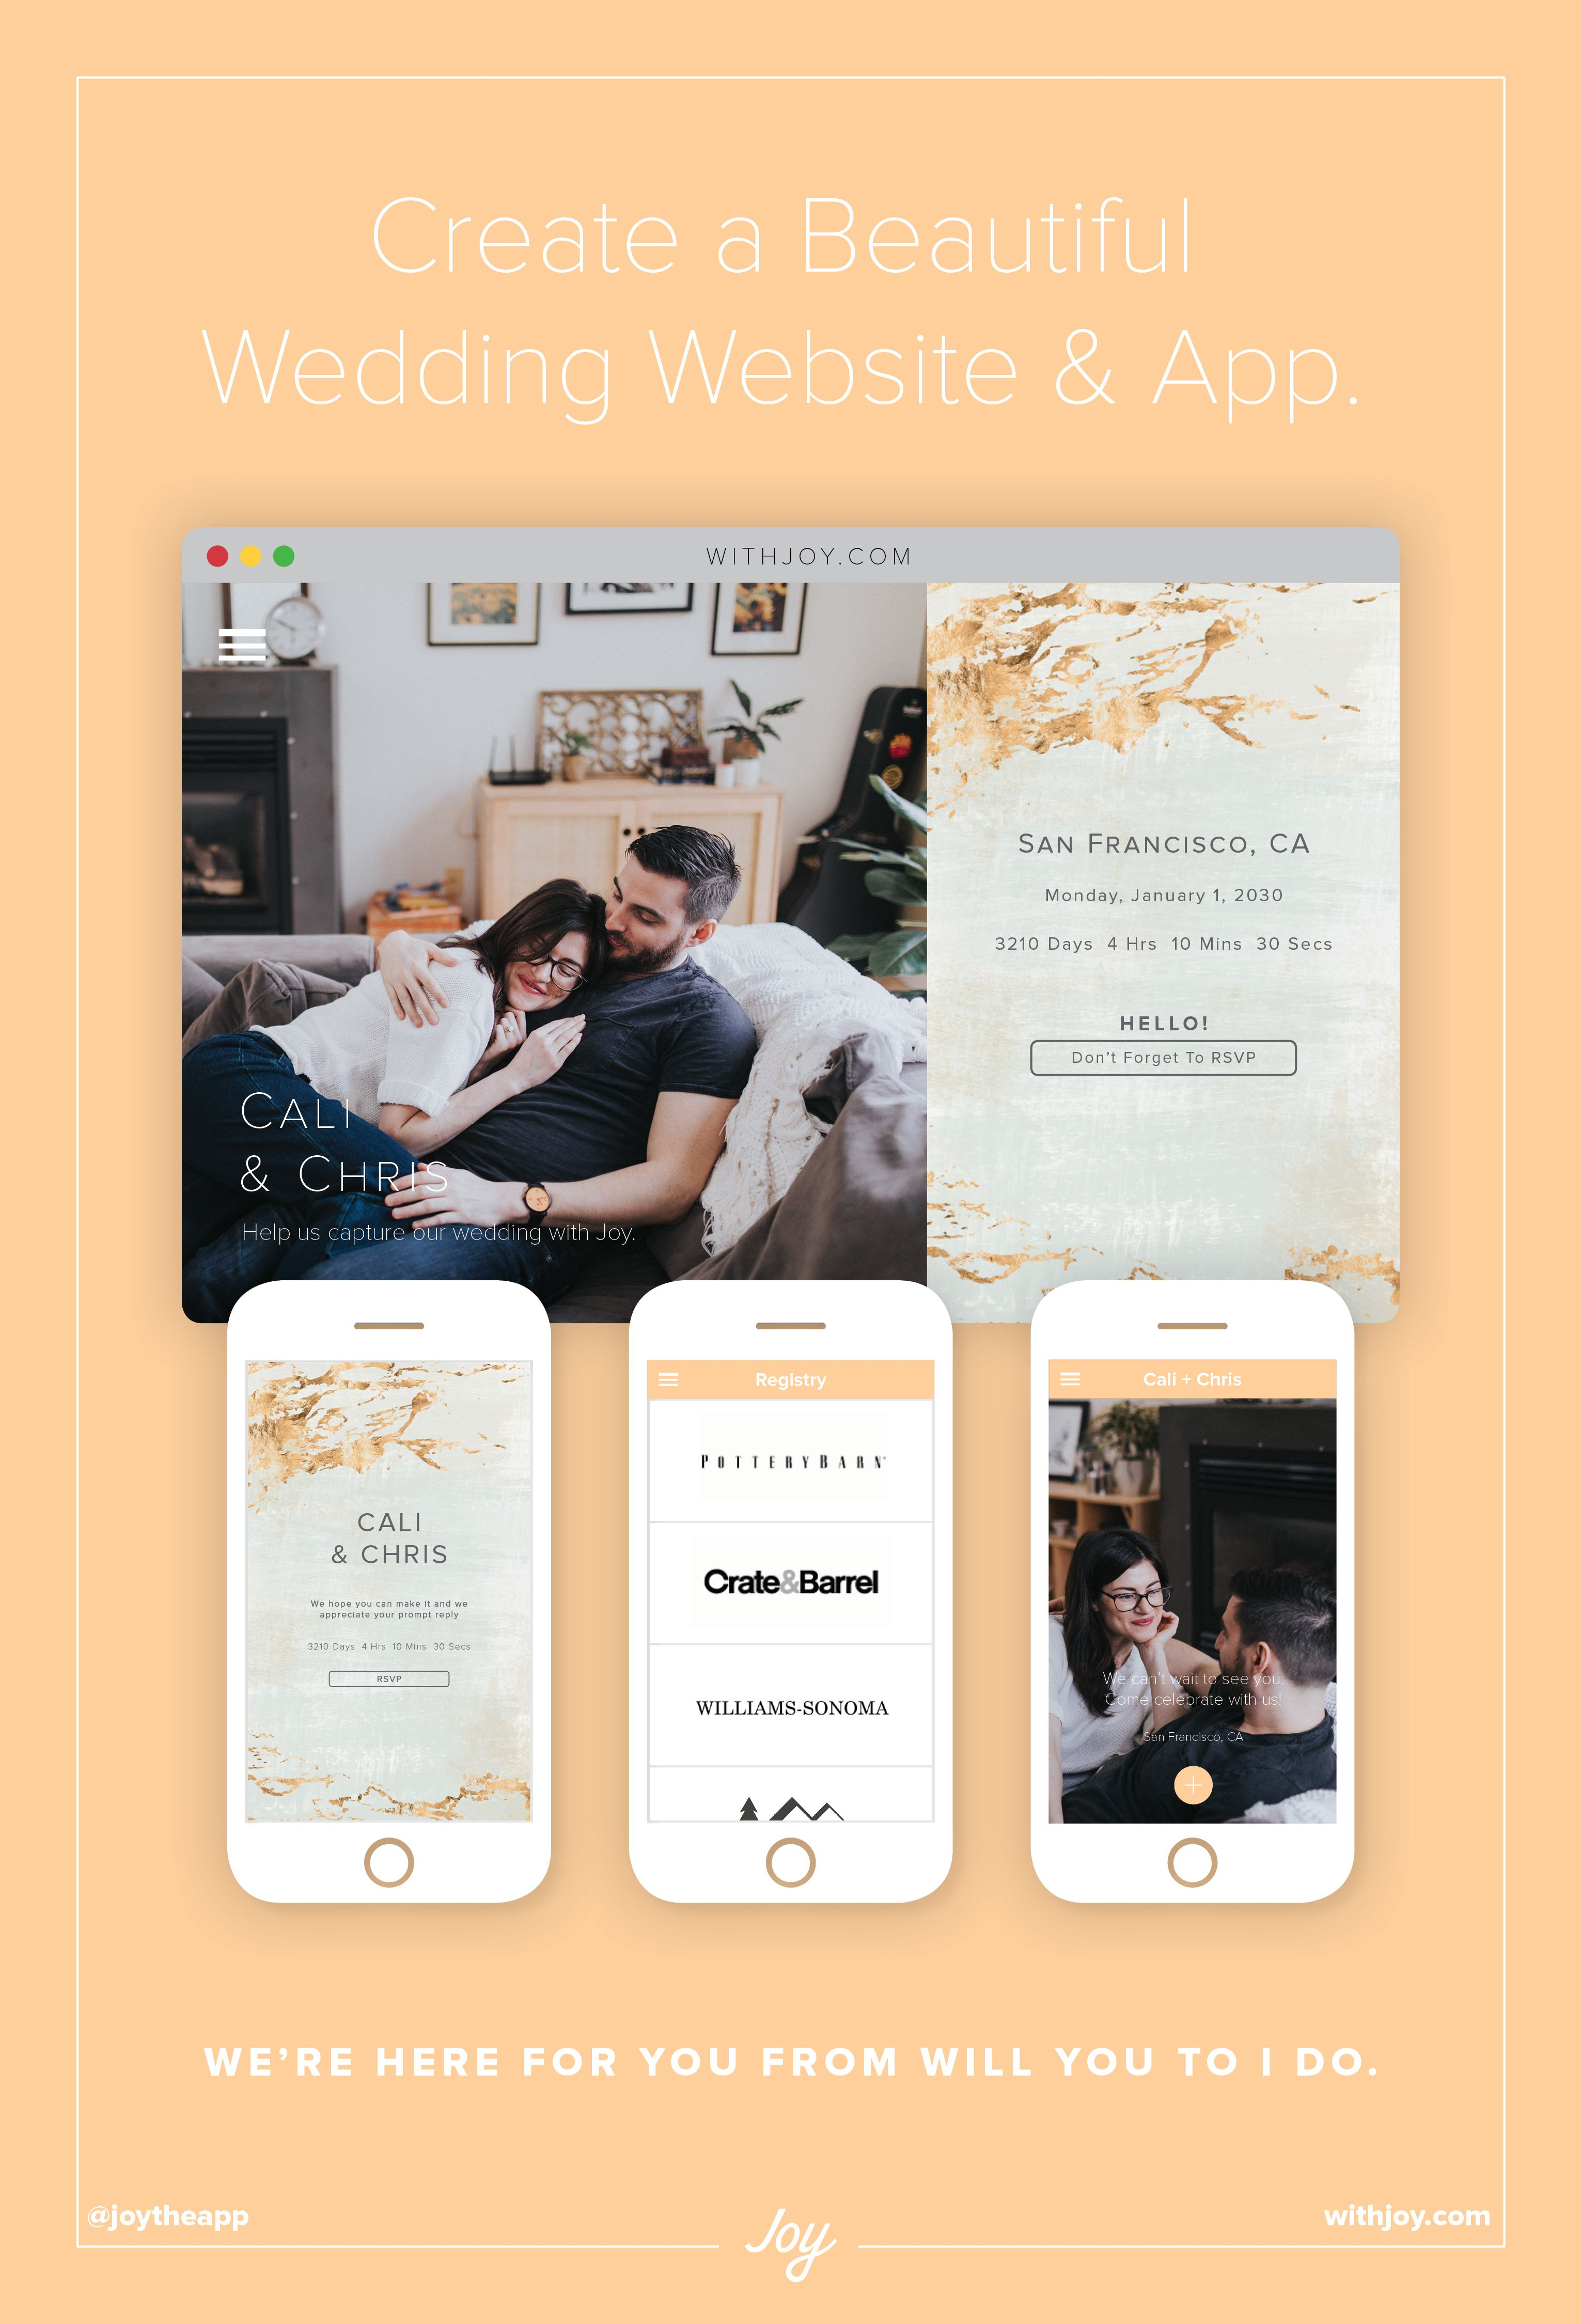 Create A Free Wedding Website And App Withjoy Com Wedding Apps Wedding Website Joy Wedding Website